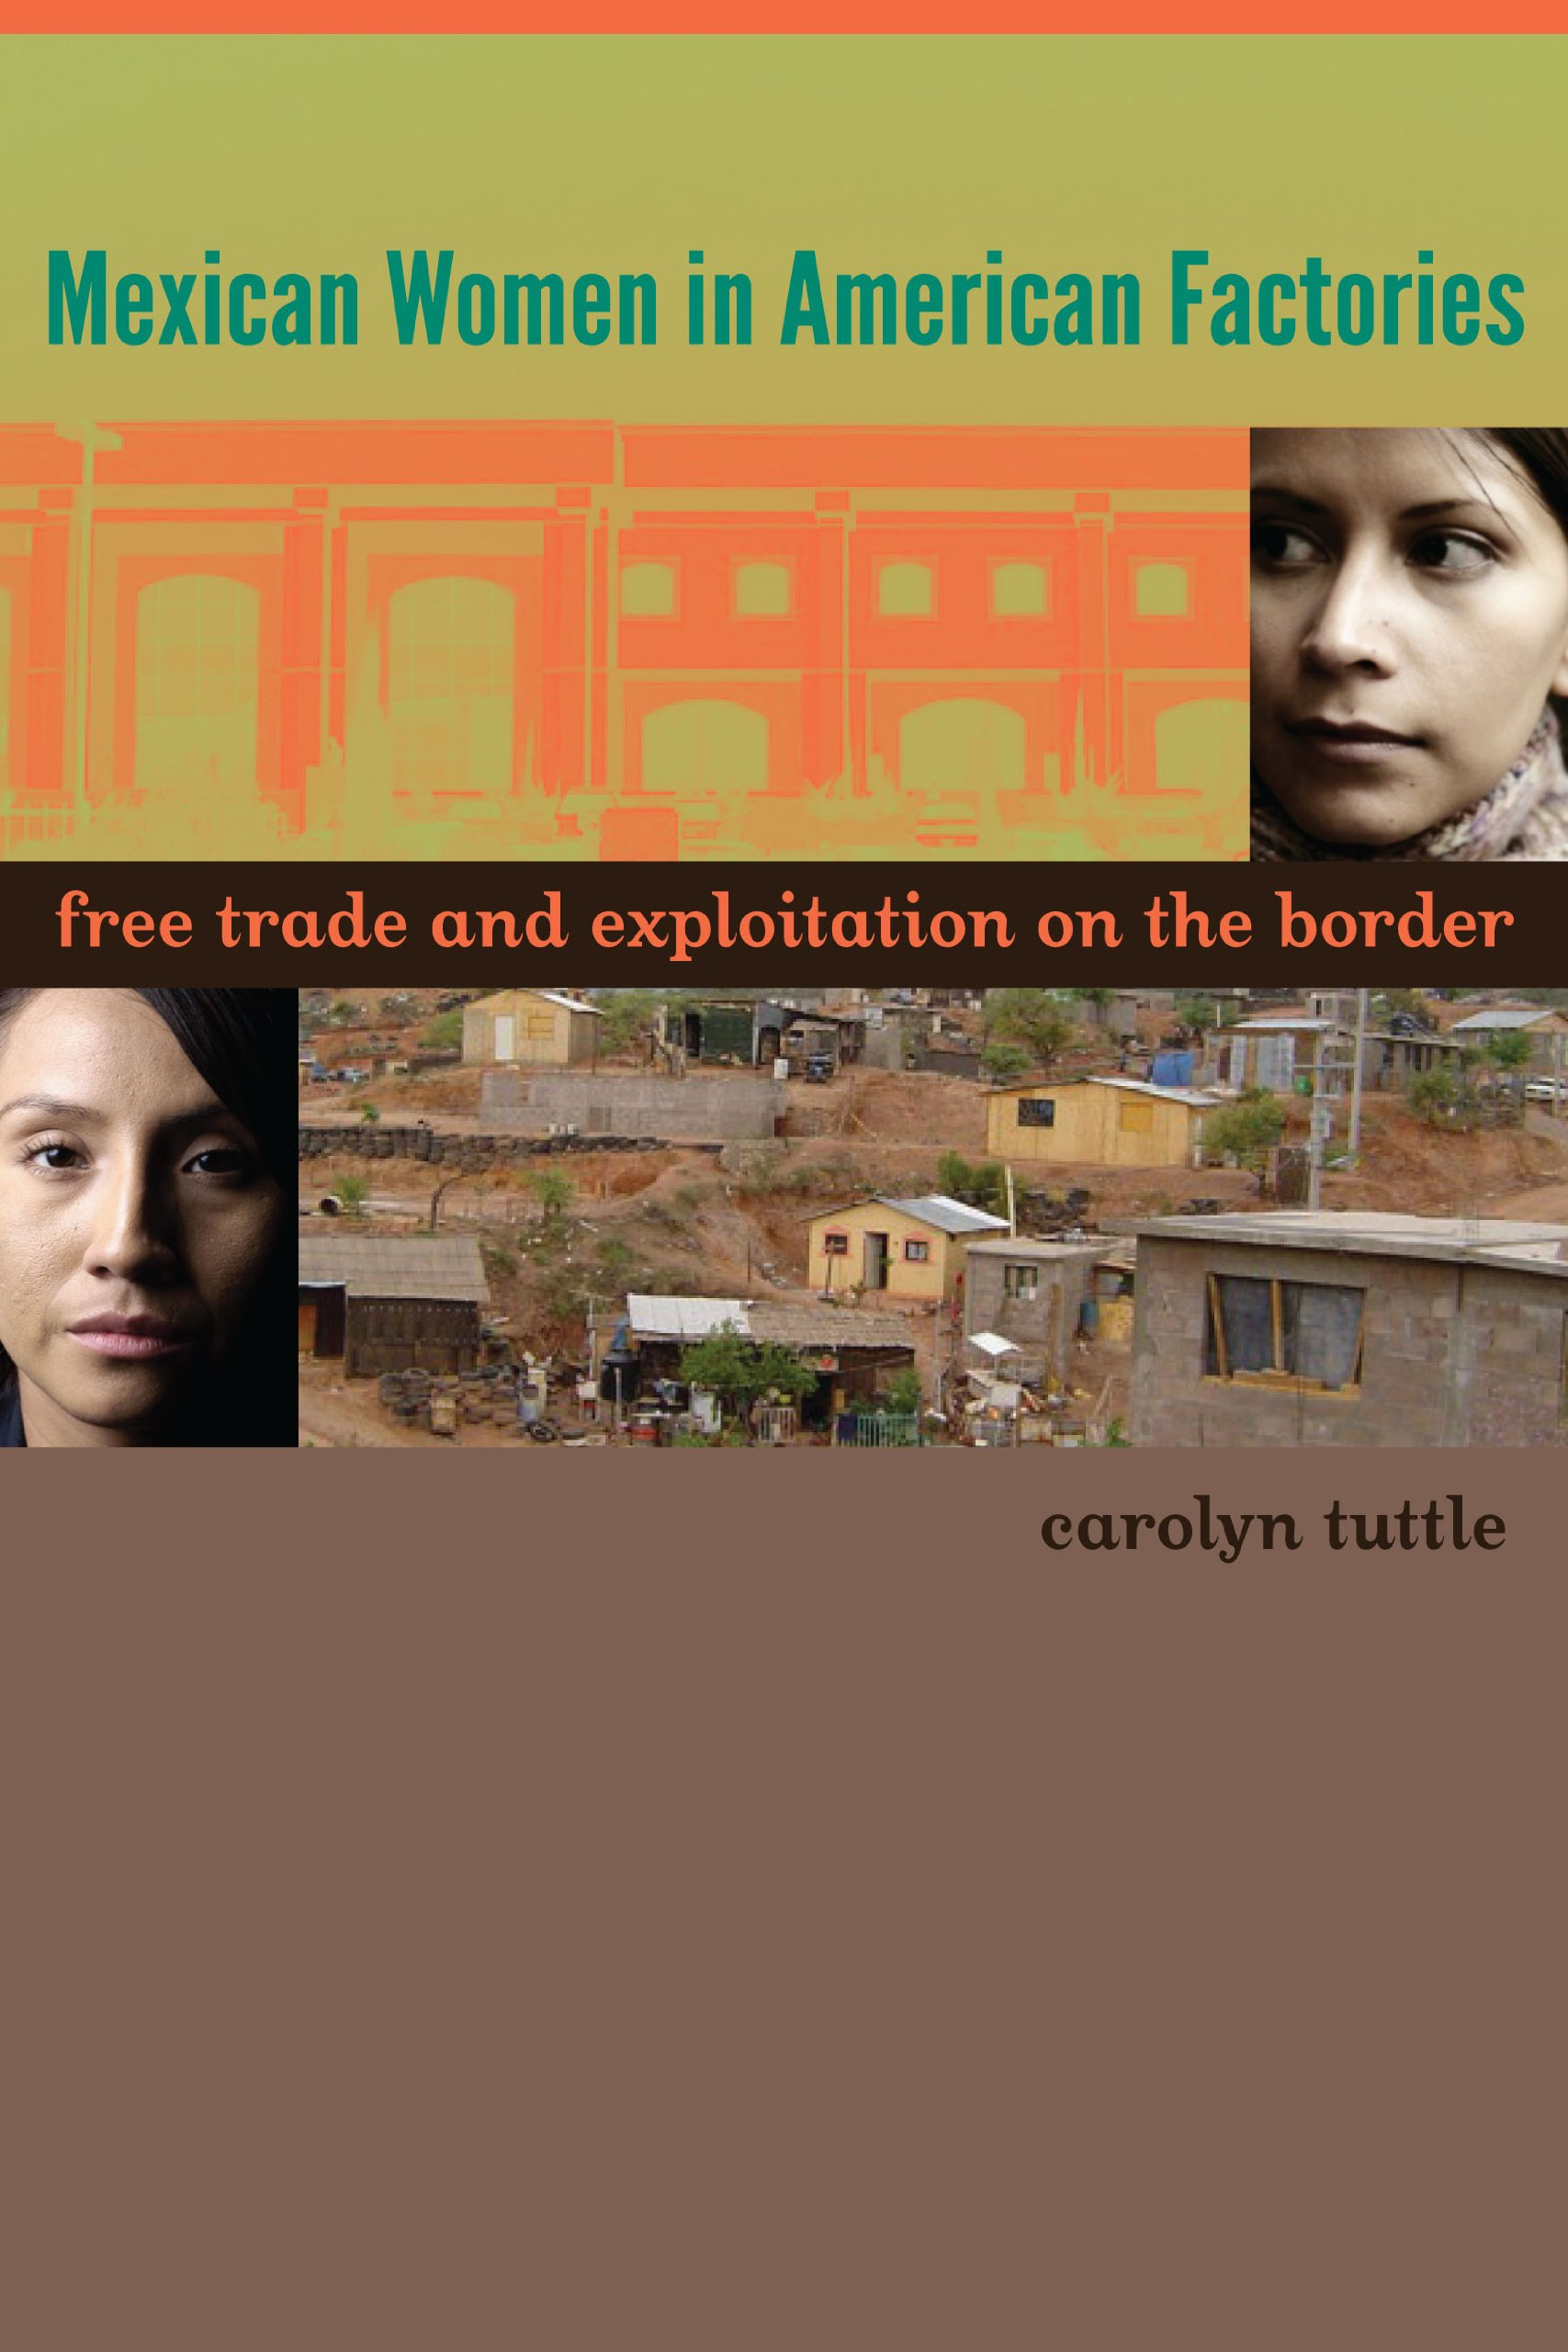 Mexican Women in American Factories: Free Trade and Exploitation on the Border